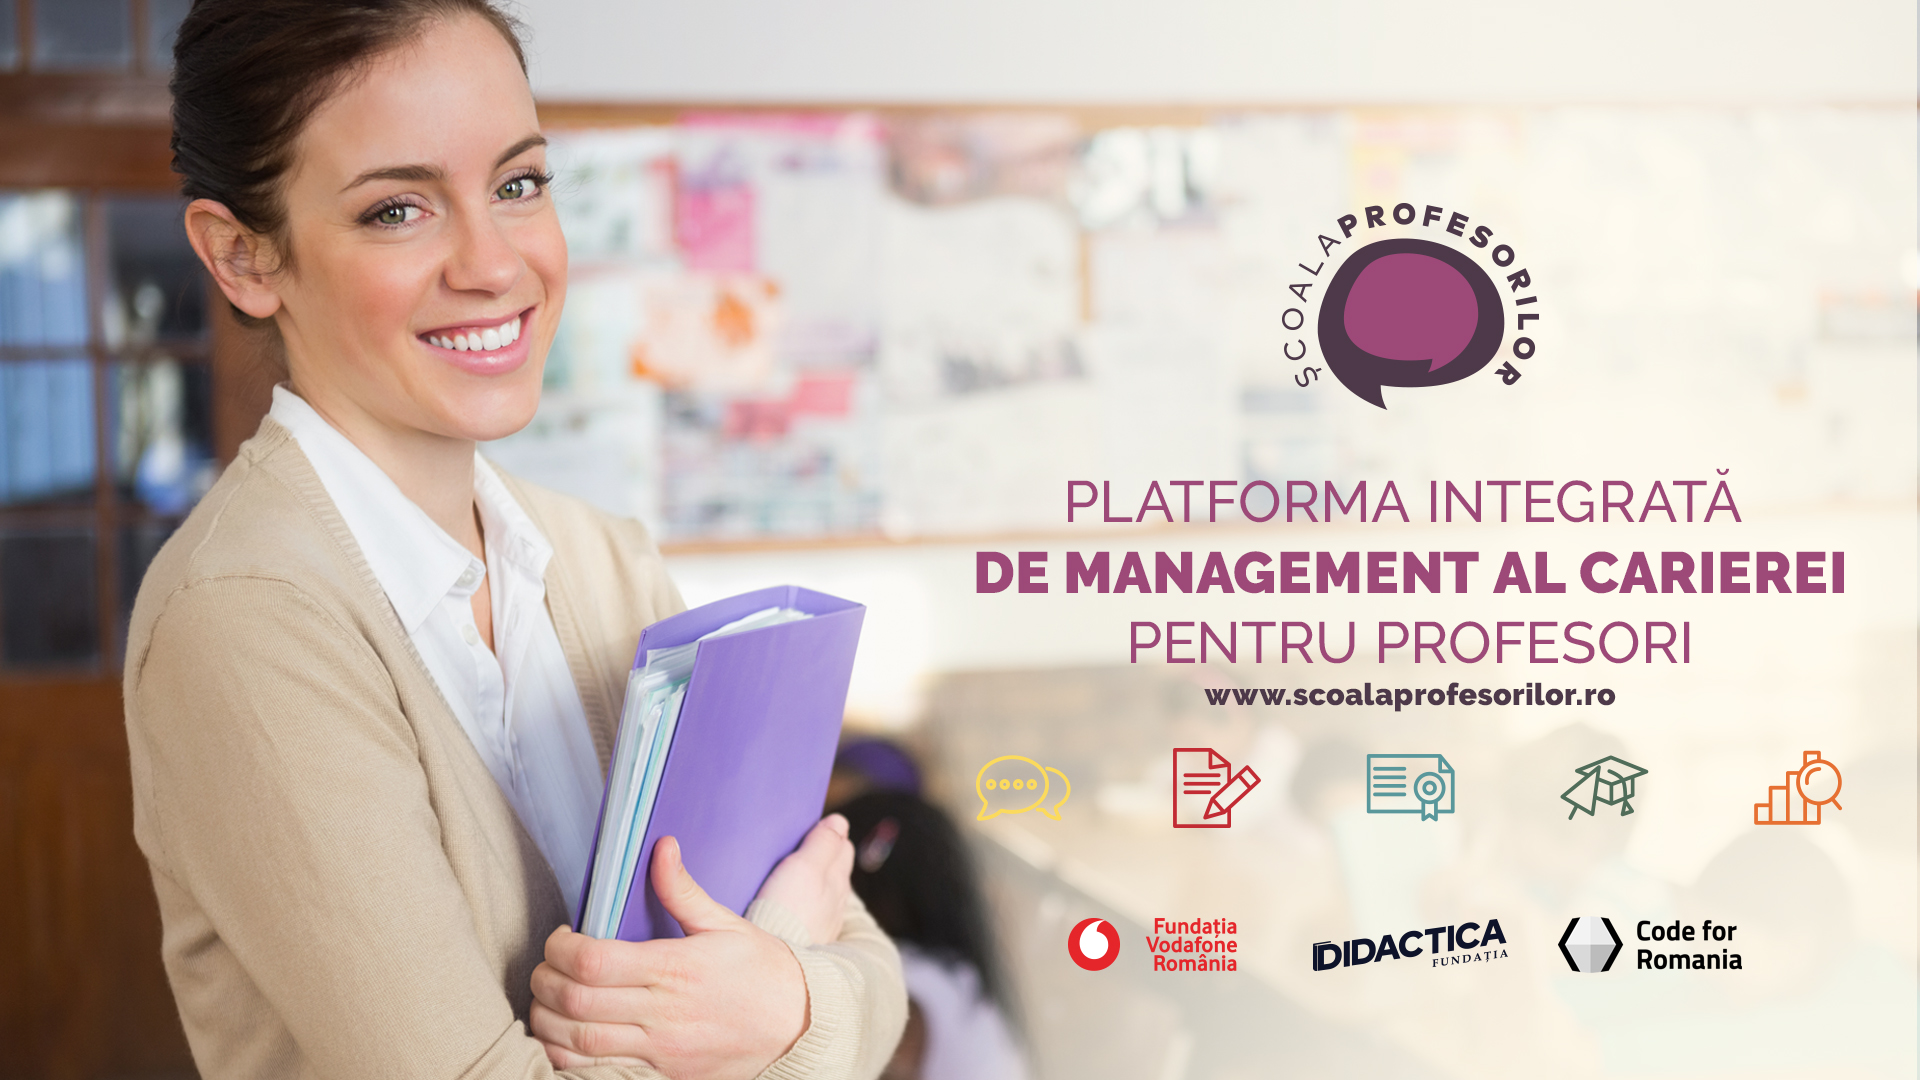 www.școalaprofesorilor.ro, now available to teachers for continuing training